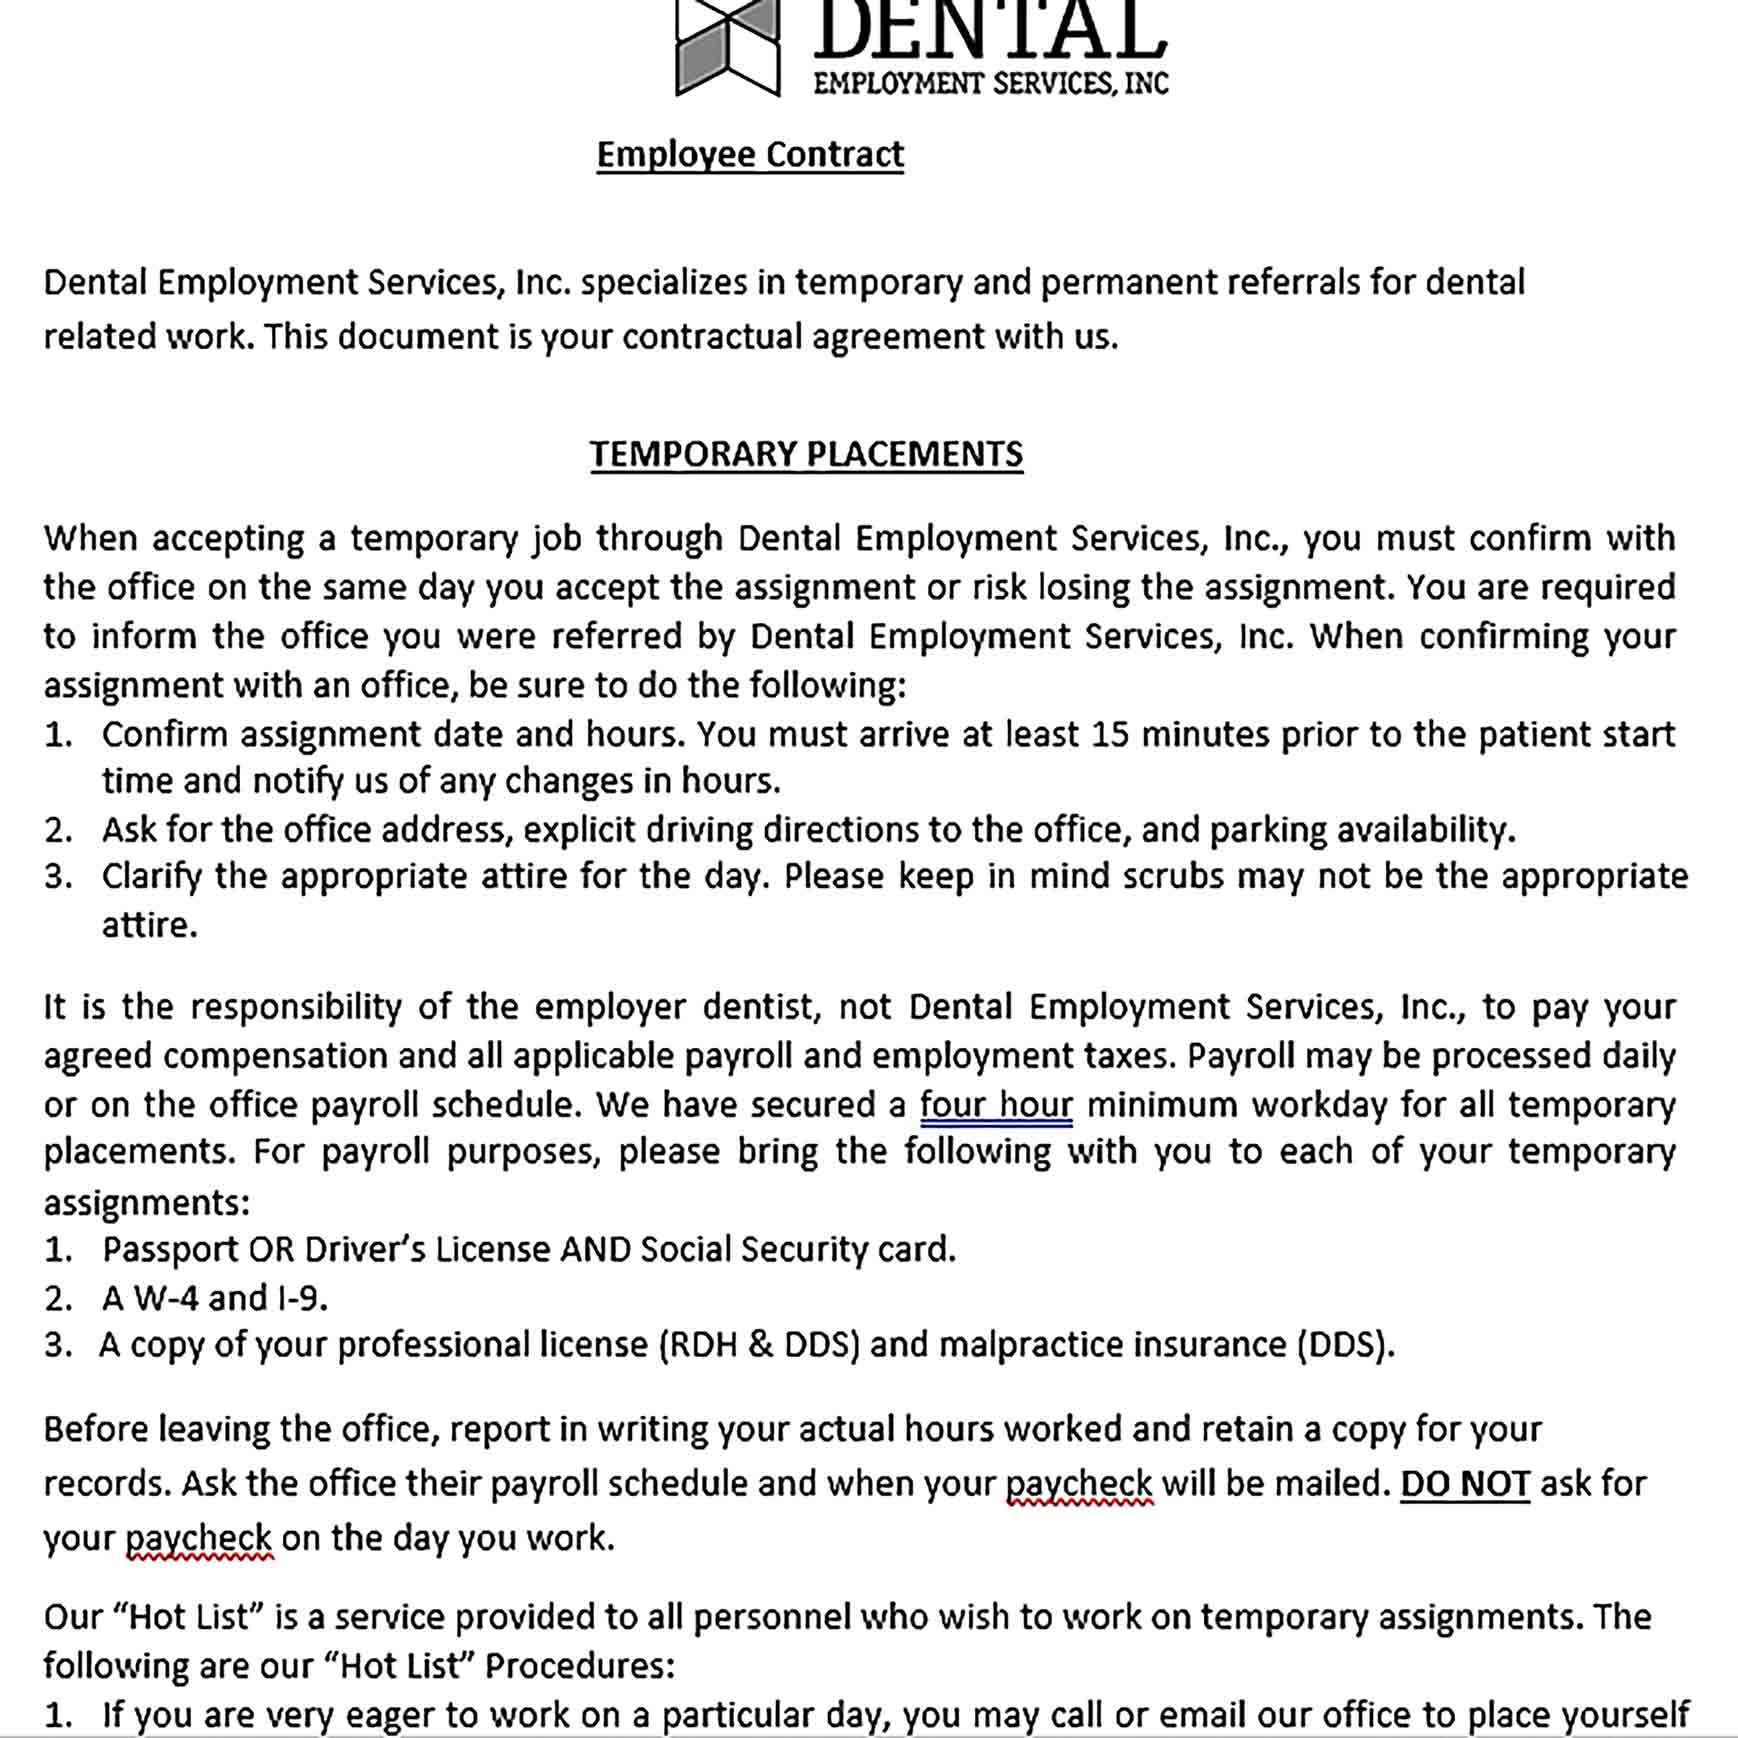 Sample Dental Employee Contract Agreement